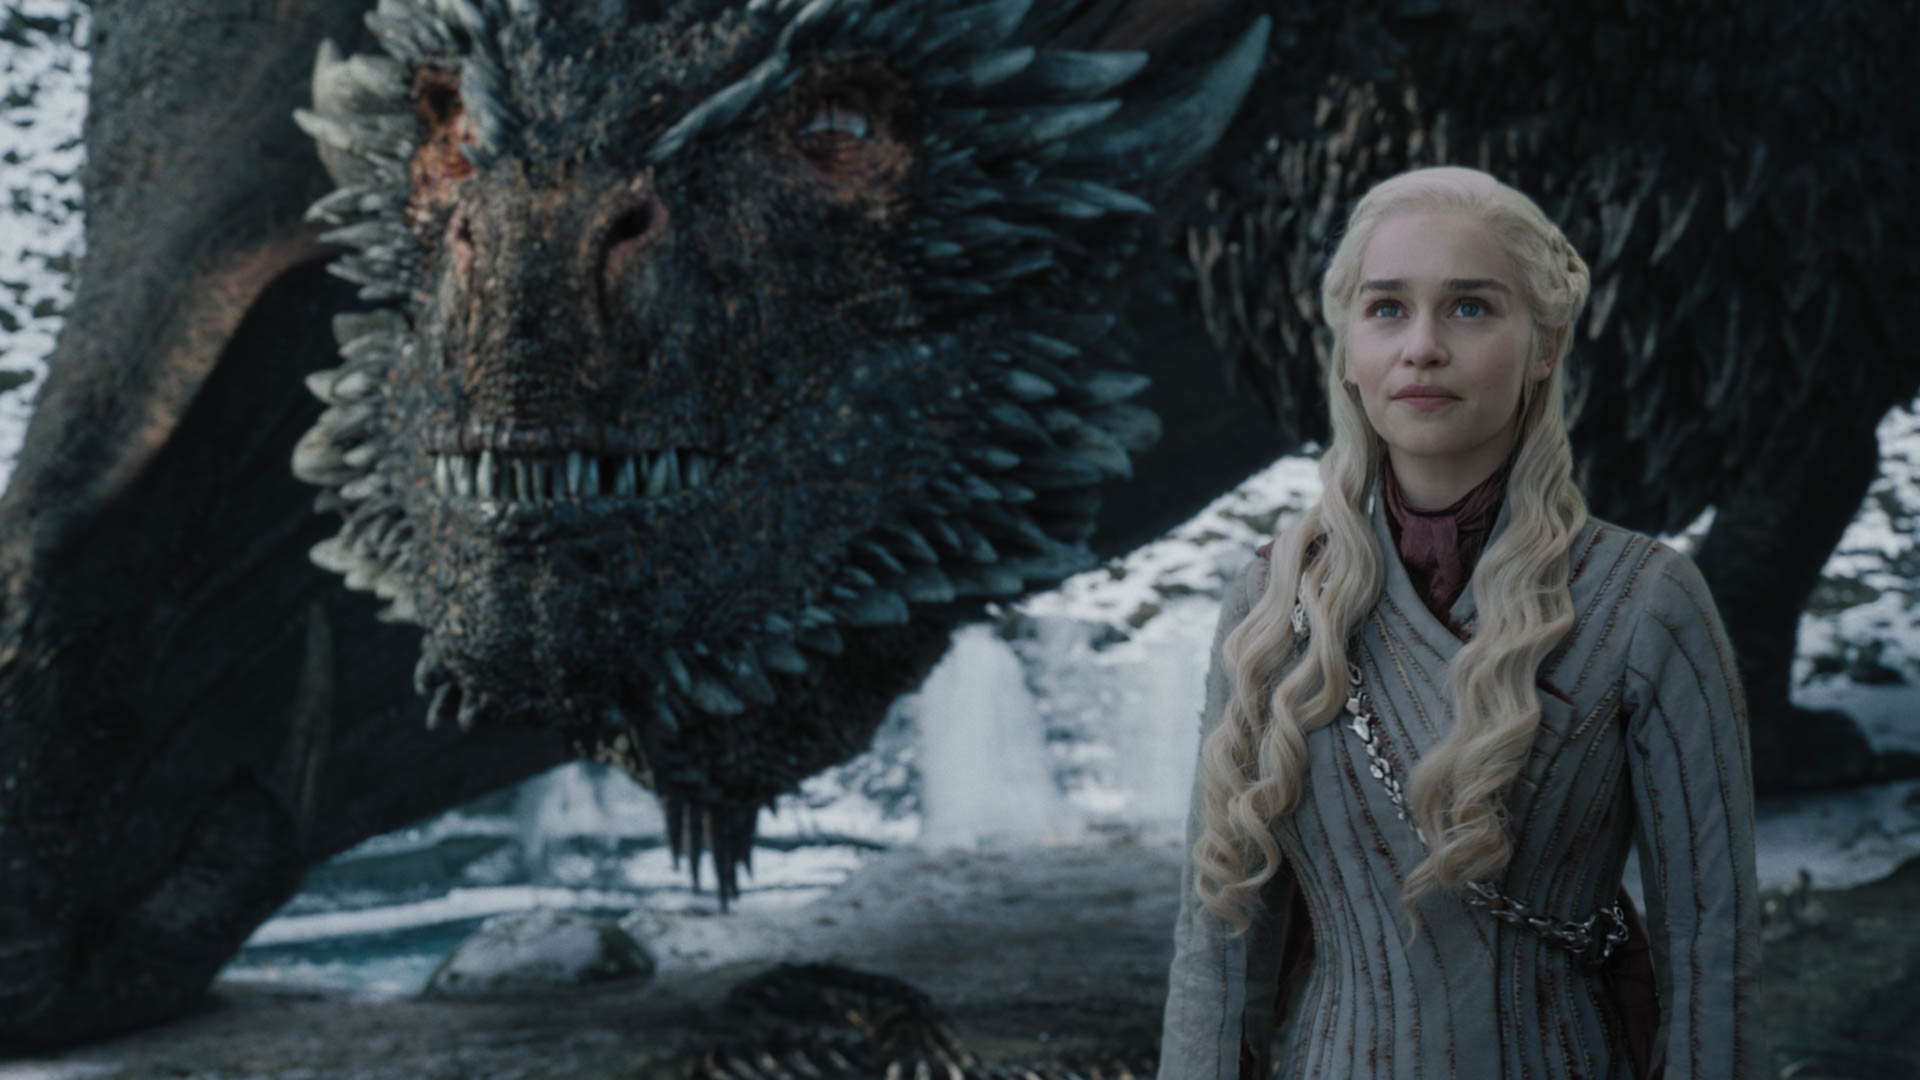 Spoiler alert: The latest episode of Game of Thrones has (again) leaked early.